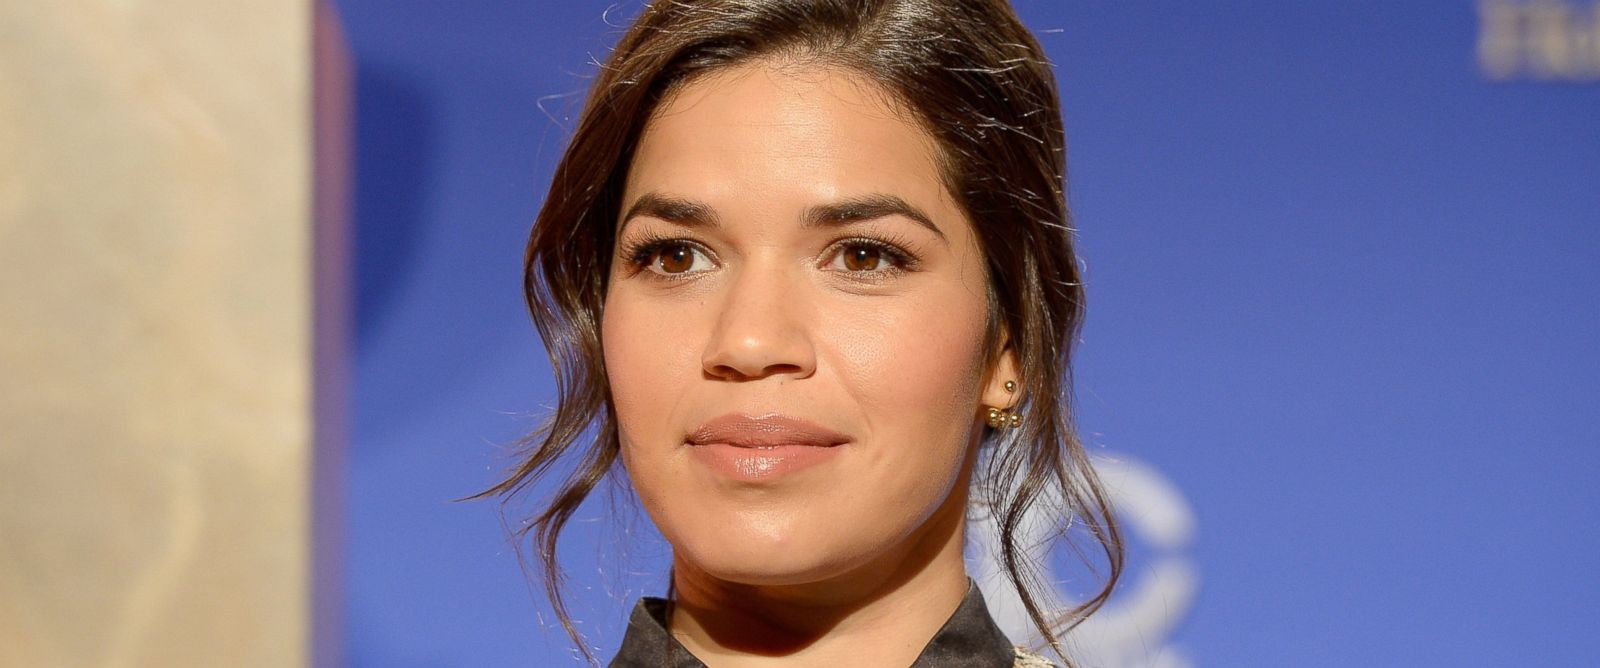 PHOTO: Actress America Ferrera attends the 73rd Annual Golden Globe Awards Nominations Announcement at The Beverly Hilton Hotel on Dec. 10, 2015 in Beverly Hills, Calif.